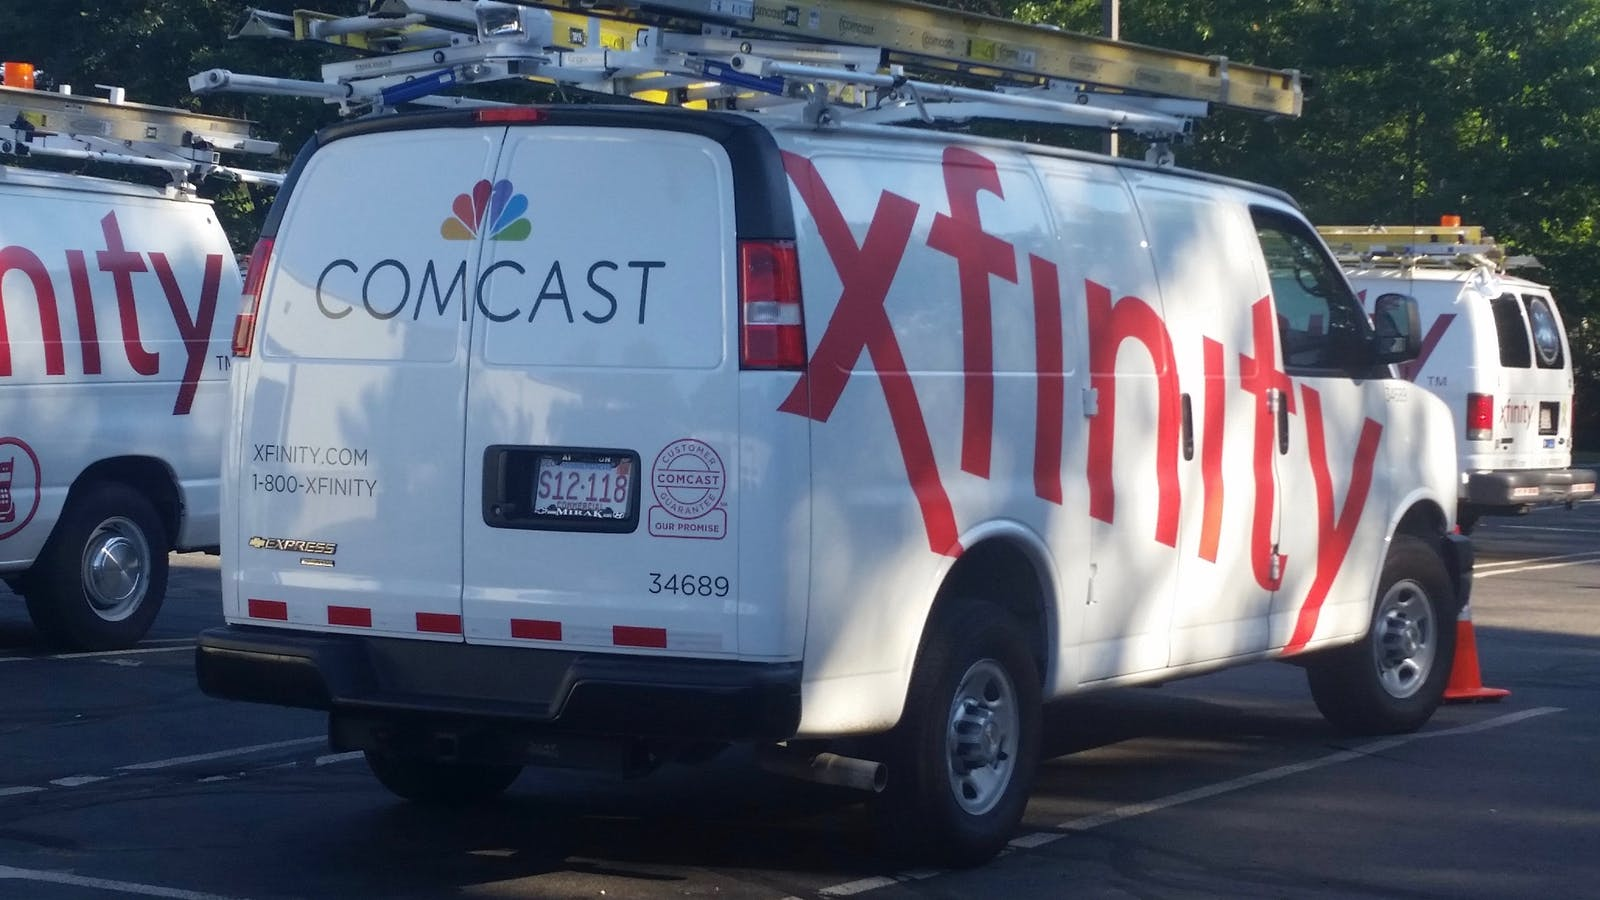 A Comcast cable truck. Photo by AP.